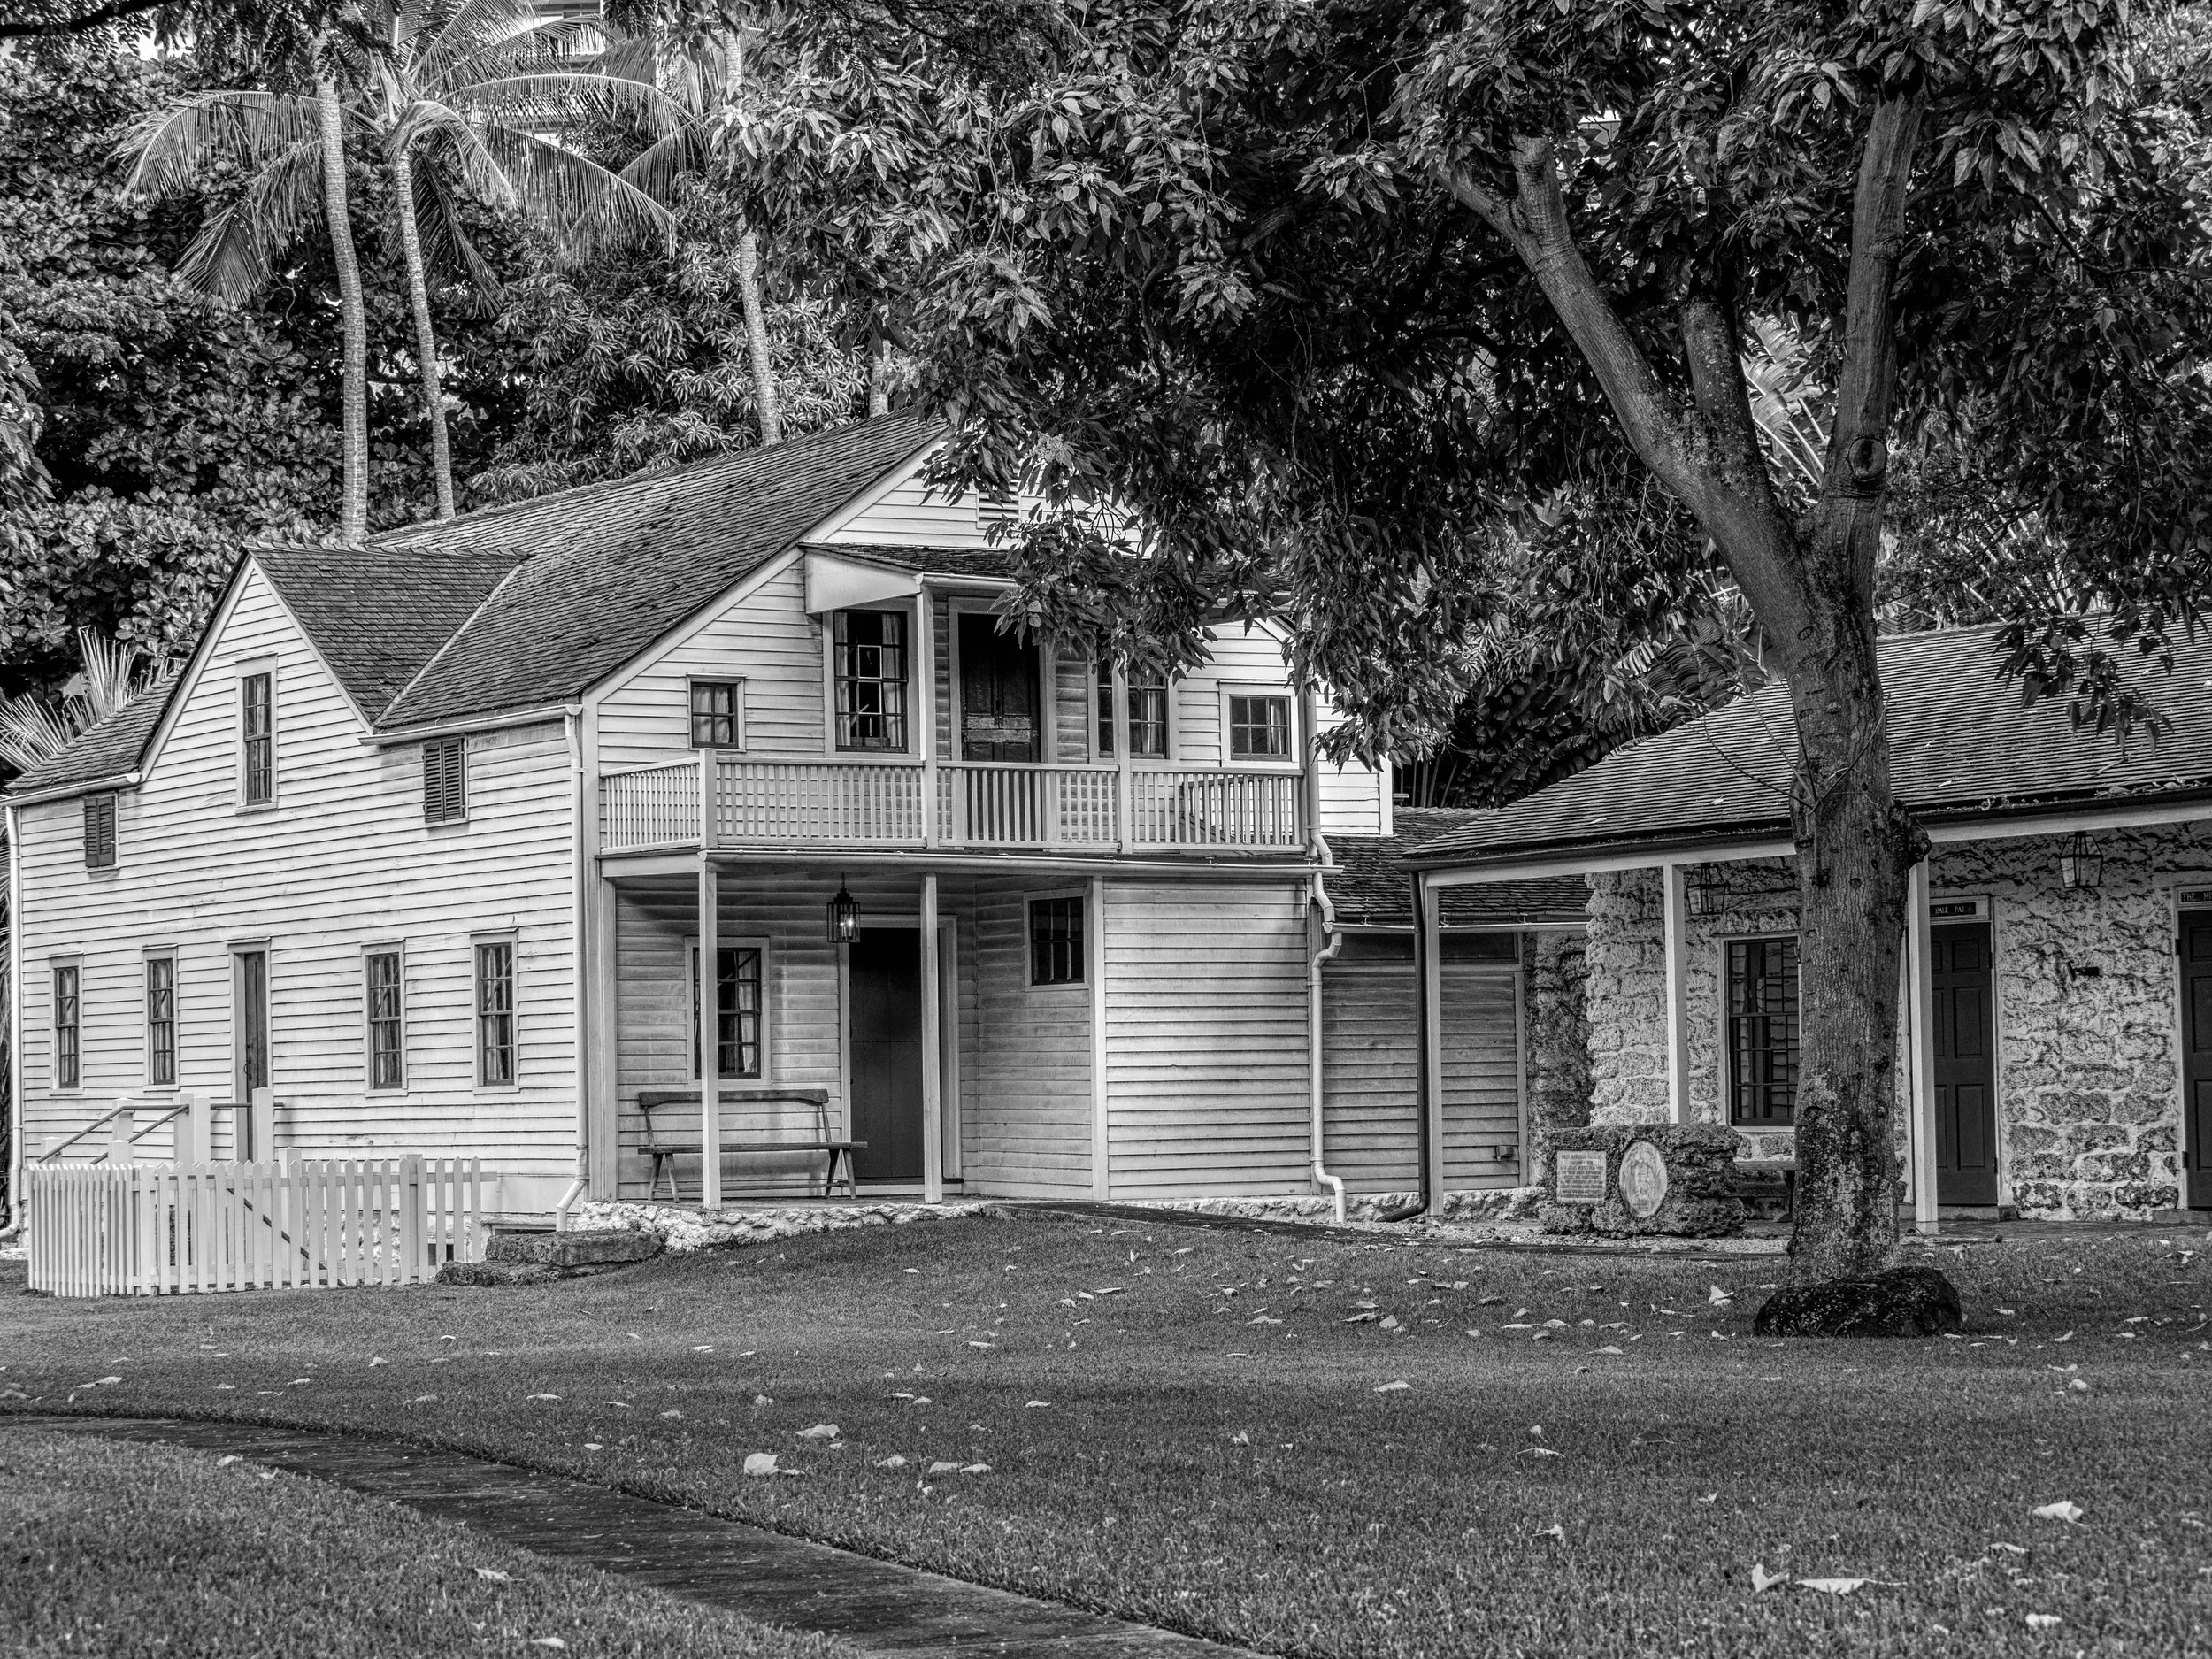 The Hawaiian Mission Houses, conveniently located adjacent to Kawaiaha'o Church in Honolulu.